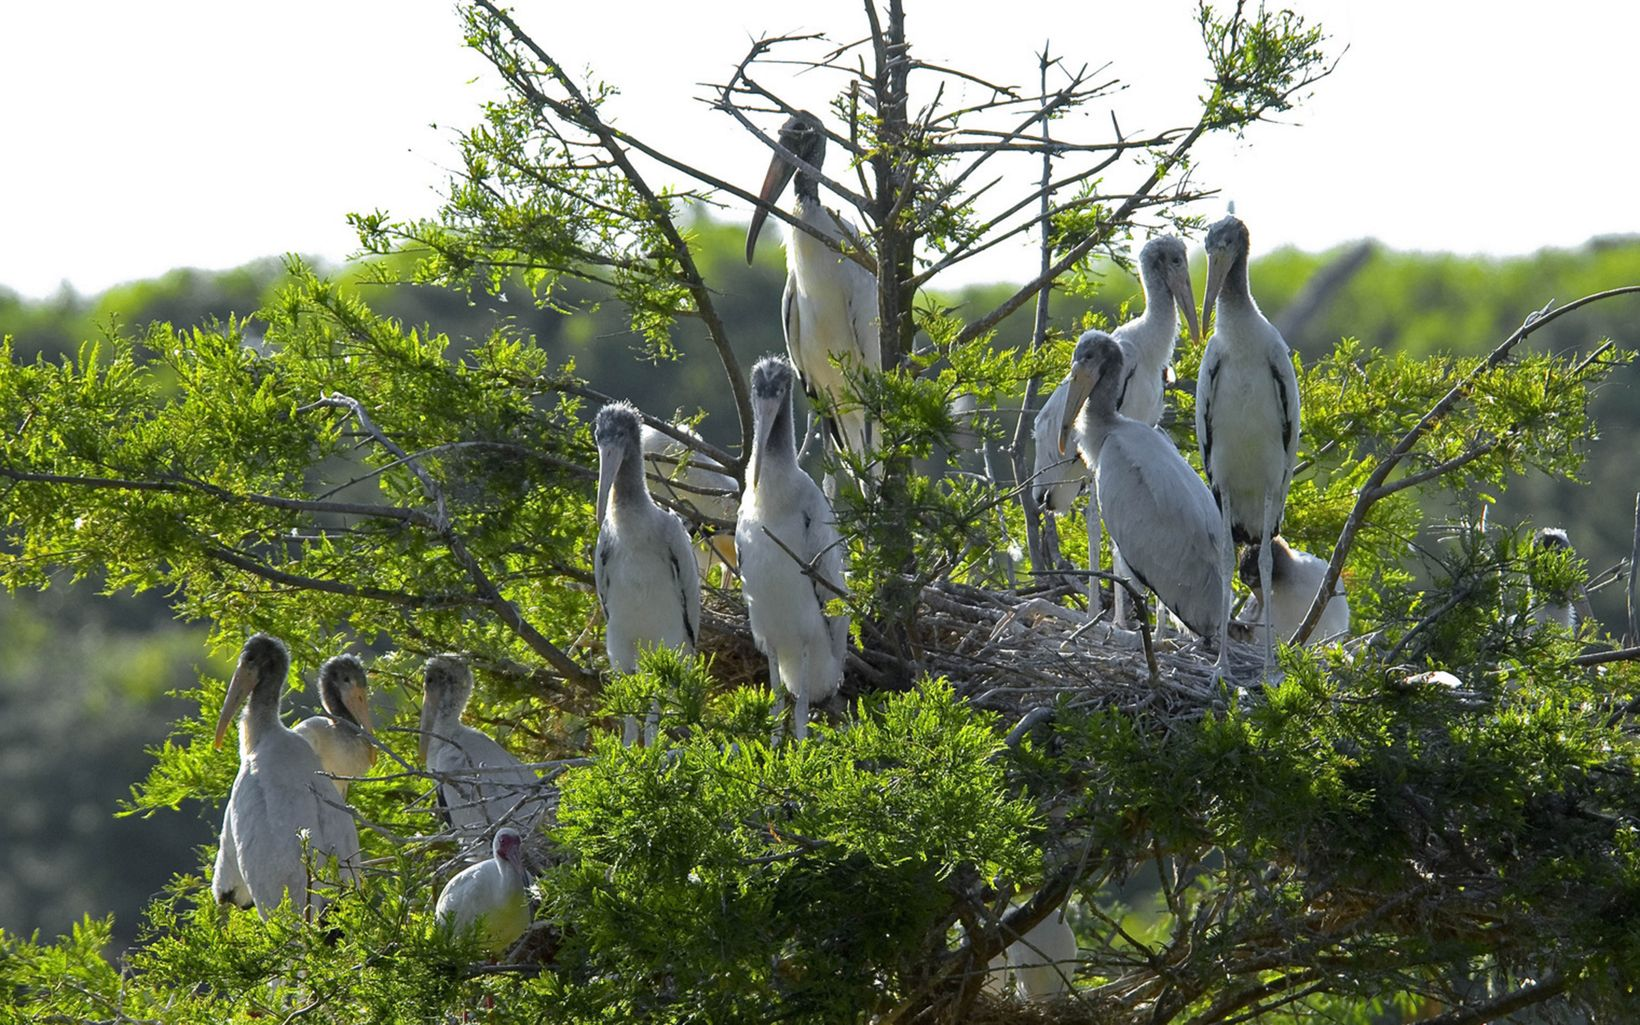 Ten large white birds sit in a tree top around a large